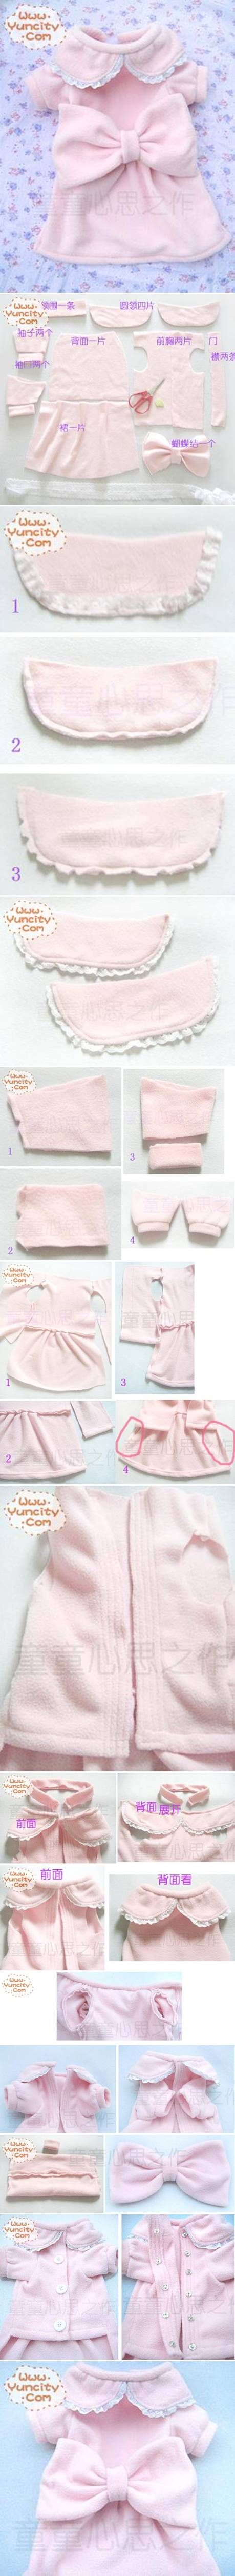 DIY Cute Dog Dress DIY Projects | UsefulDIY.com Follow Us on Facebook ==> http://www.facebook.com/UsefulDiy